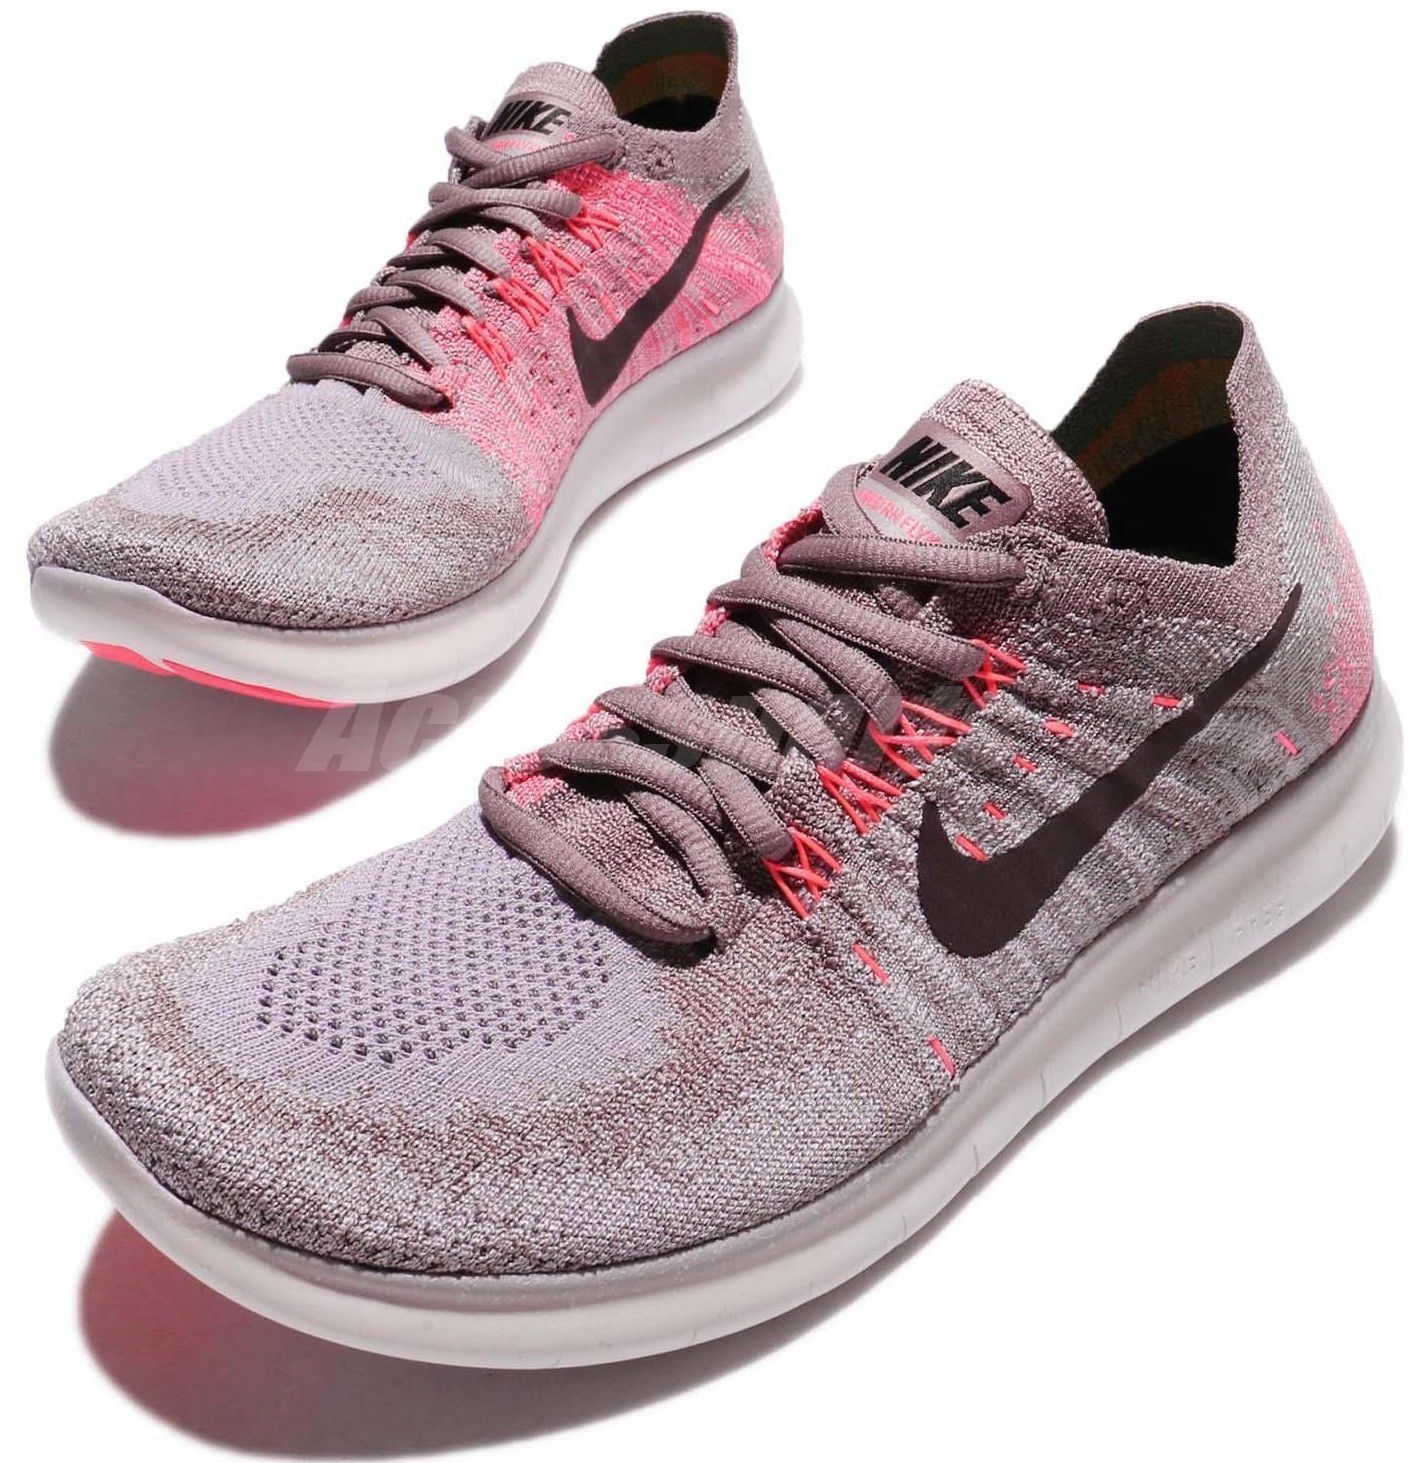 22518d23ce63 NEW NIKE FREE RN FLYKNIT 2017 wmn US sz s  and similar items. S l1600